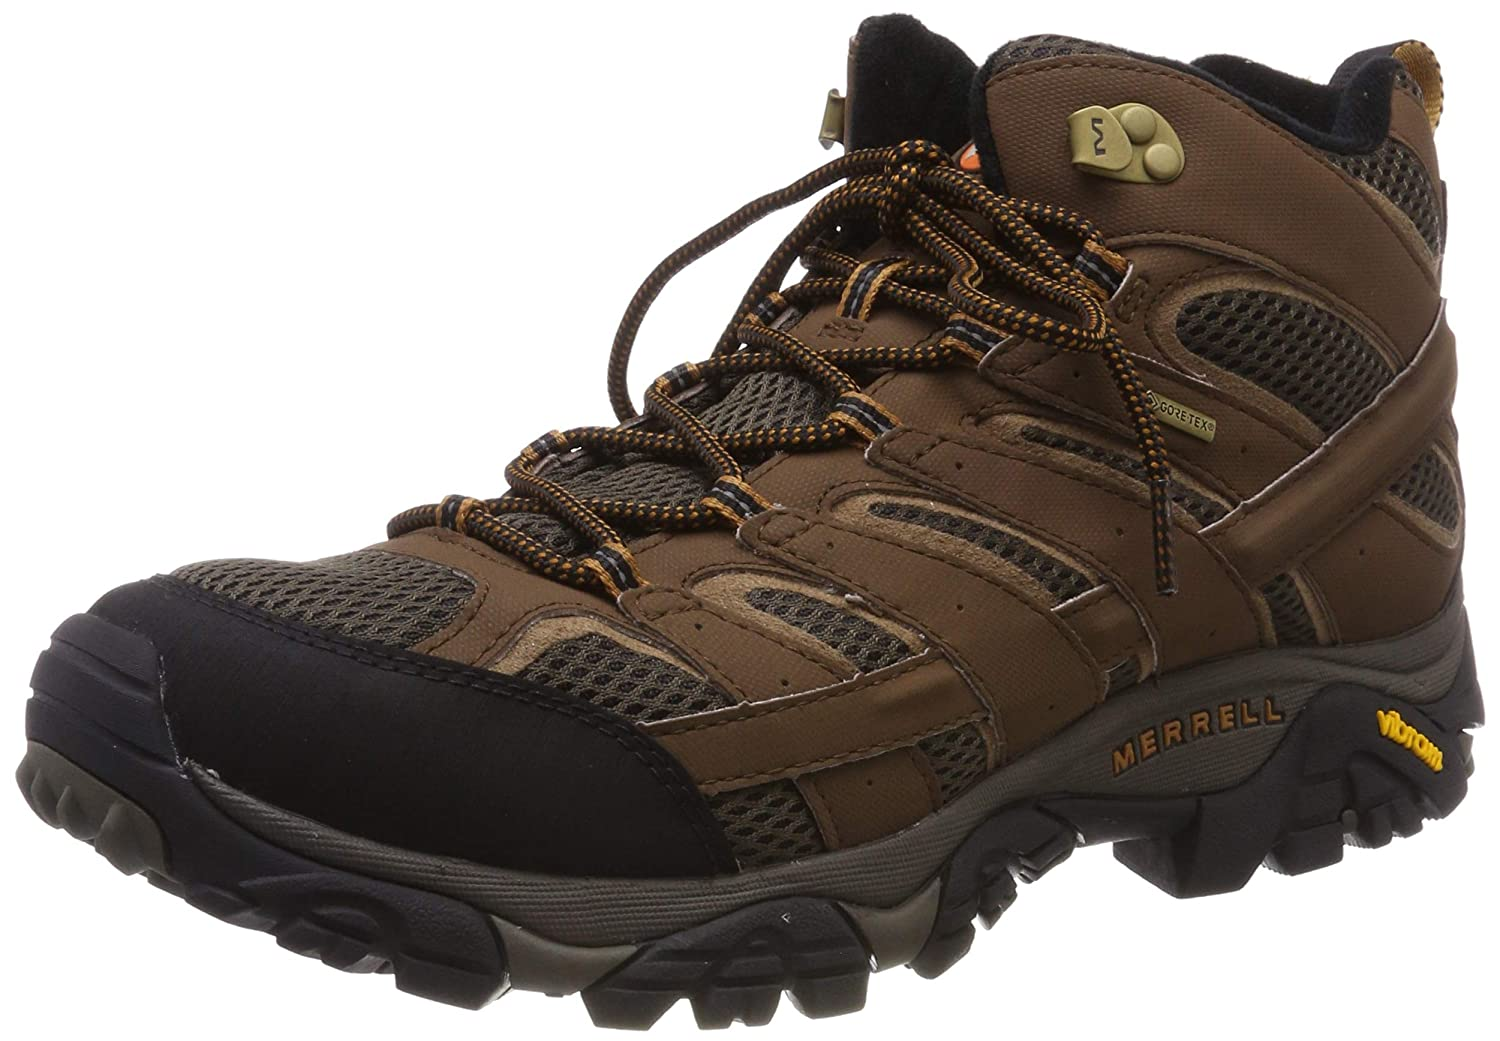 31b46410523bc Merrell Men's Moab 2 Mid GTX High Rise Hiking Boots: Amazon.co.uk: Shoes &  Bags